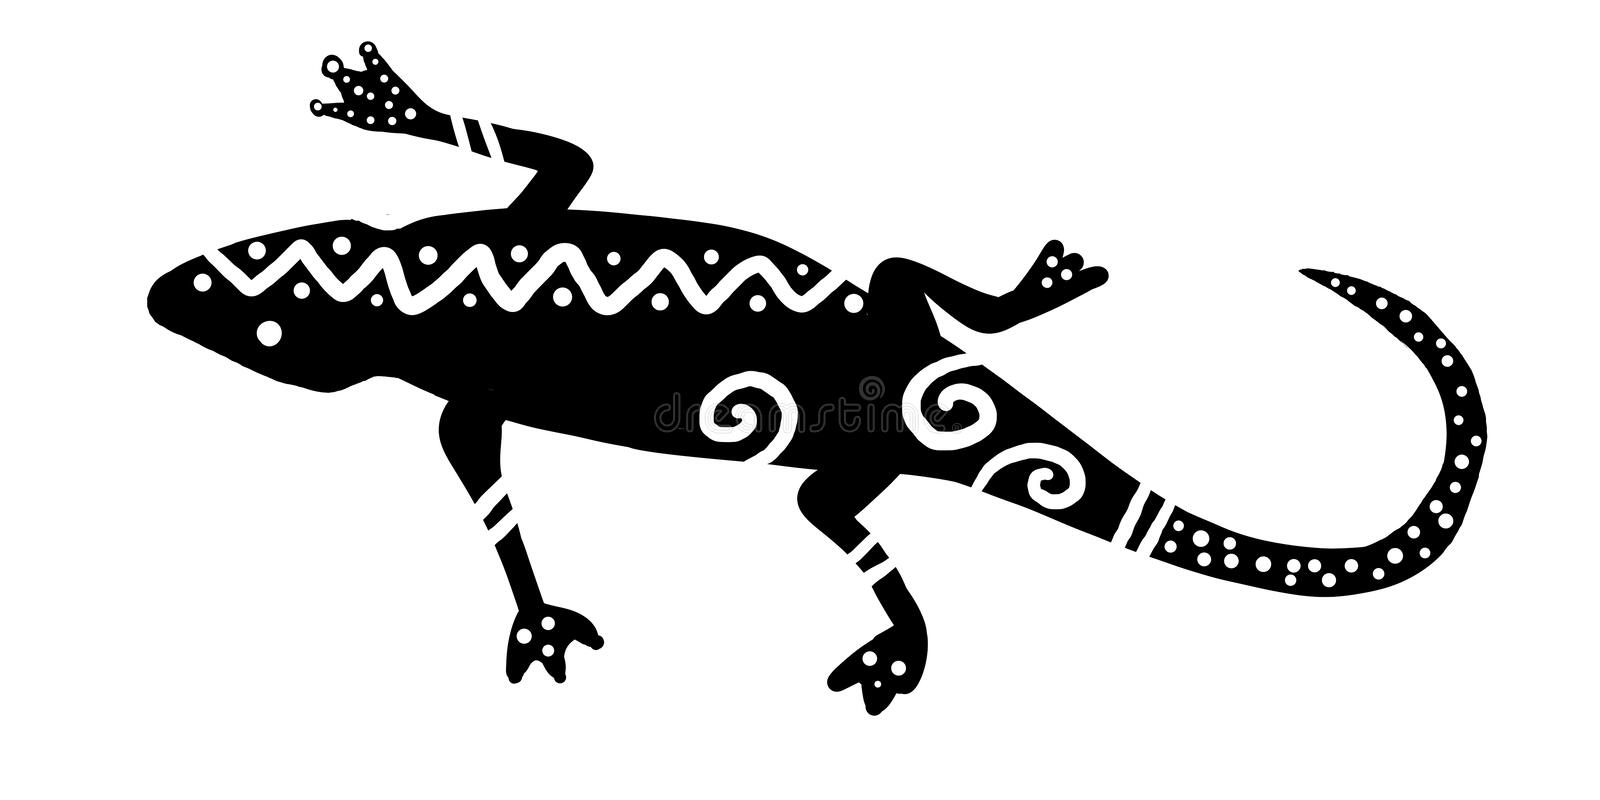 Black and white tribal lizard design with bold modern stripes, dots and wavy lines, tropical gecko or salamander stock illustration